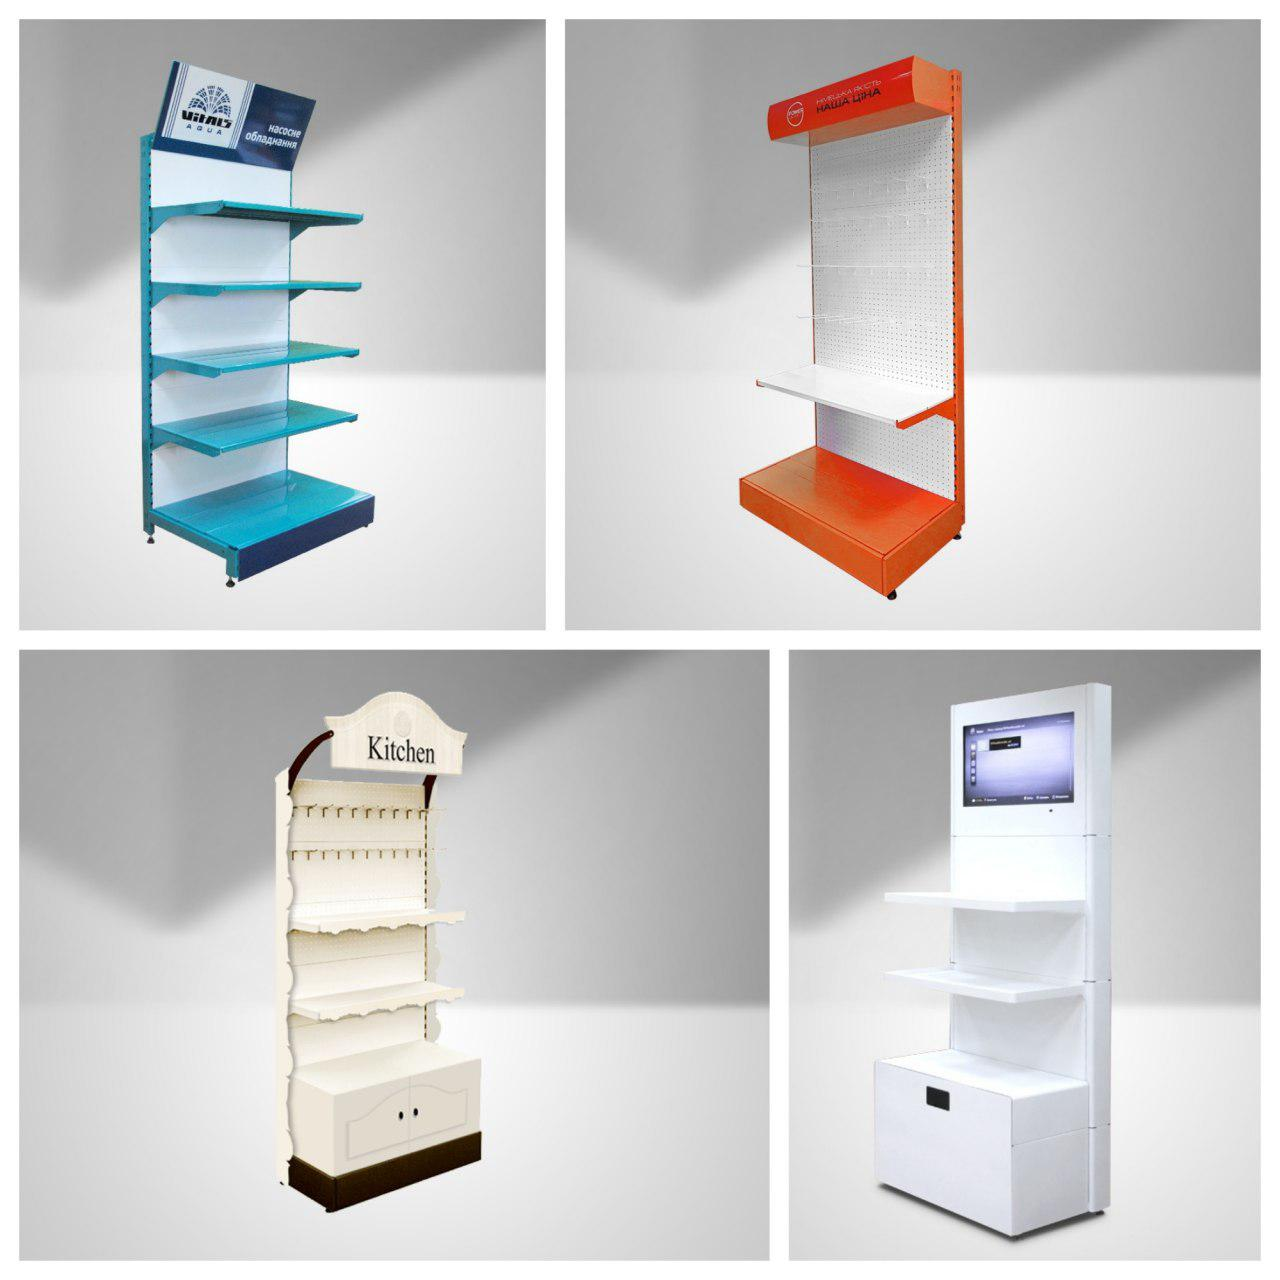 How to choose the form and color for retail display system [shelving units, showcases, counters]